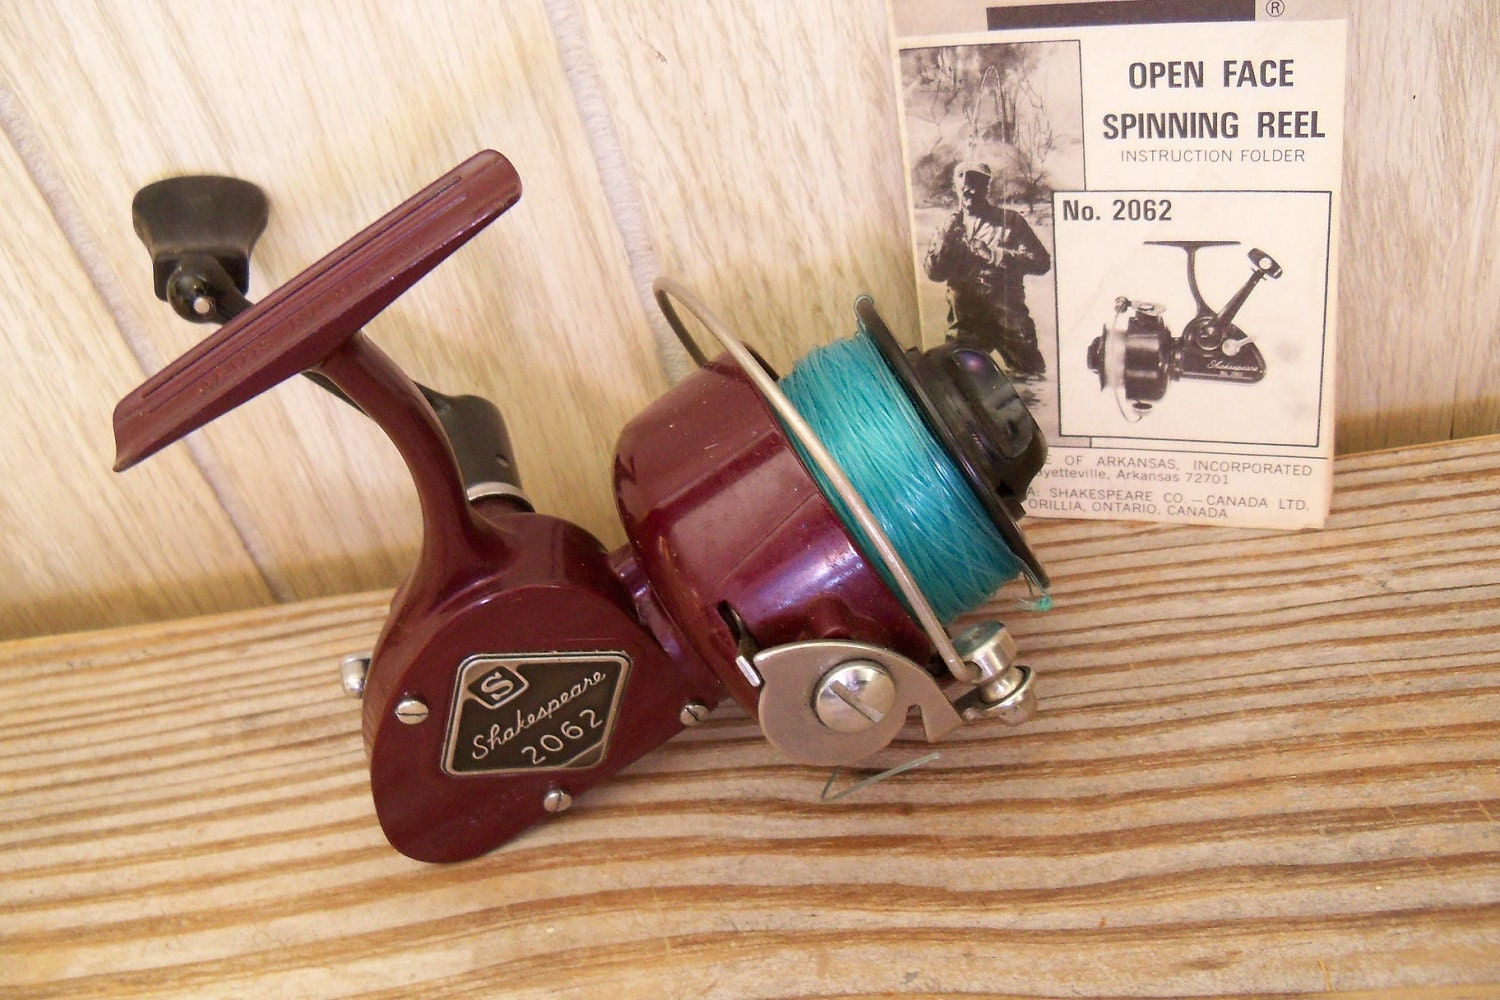 Vintage fishing reel shakespeare open face by for Open face fishing reel